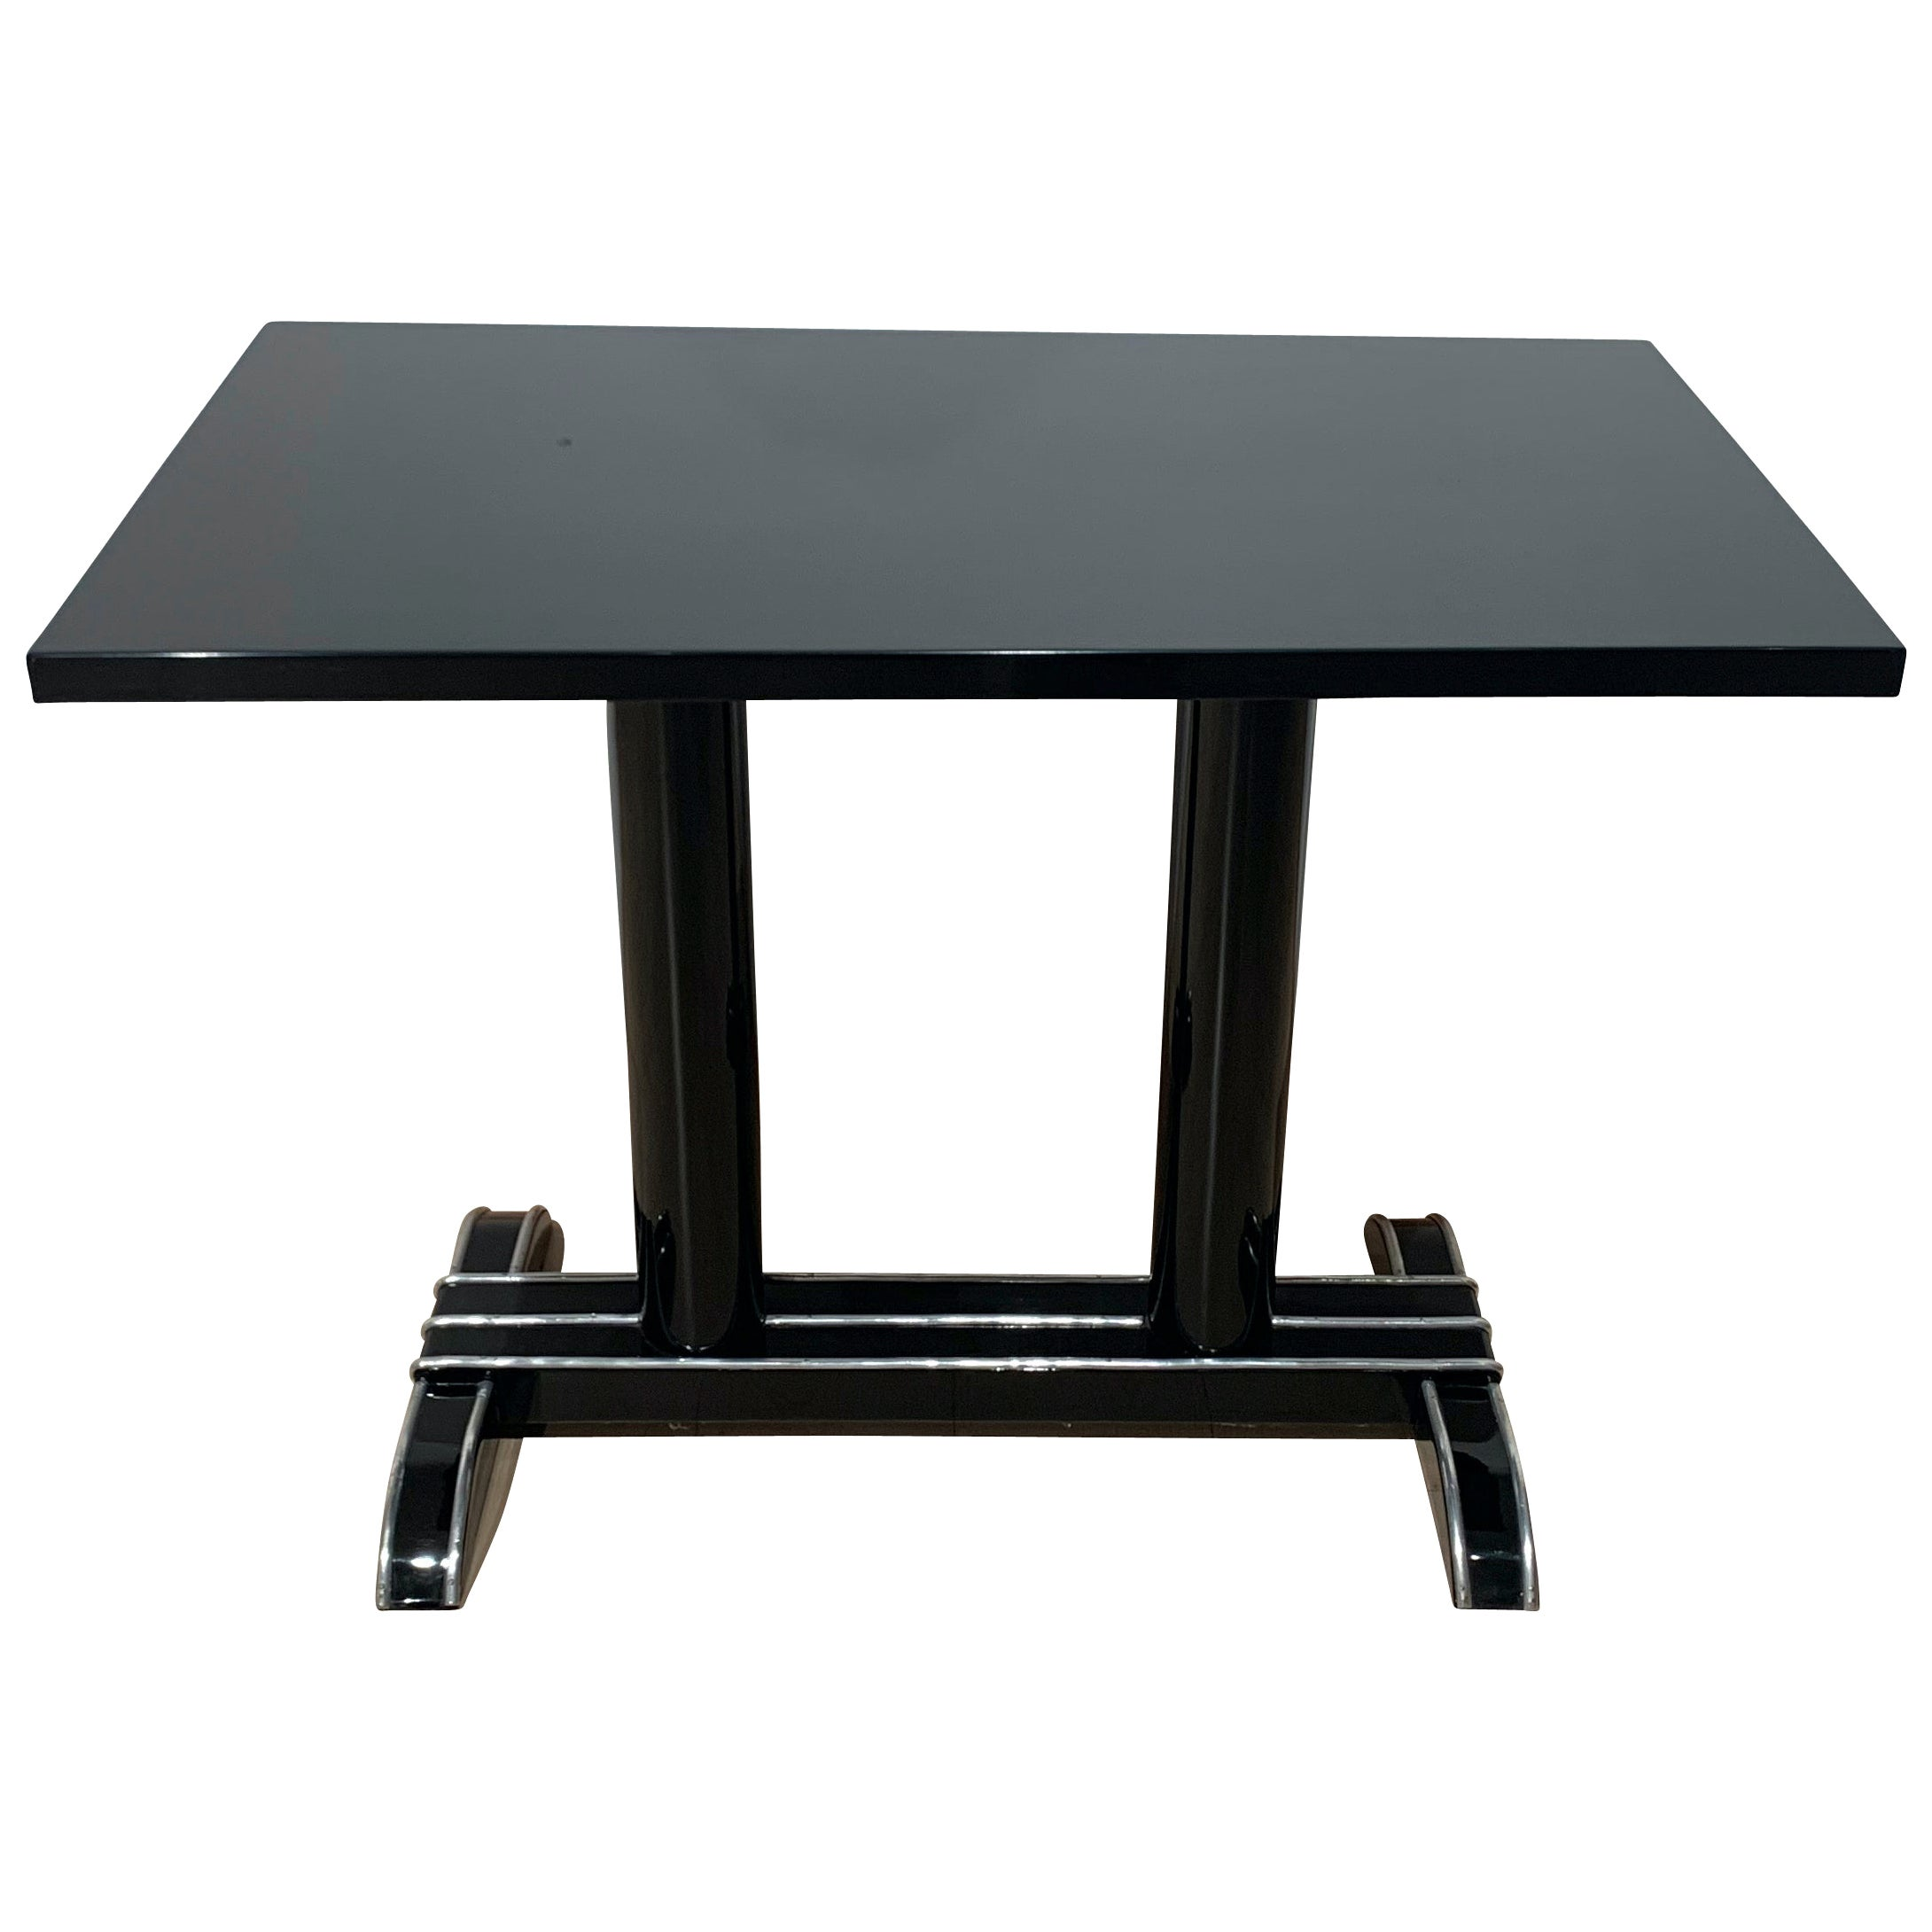 Art Deco Bistro or Side Table, Black Lacquer, Aluminum Trims, France, 1930s